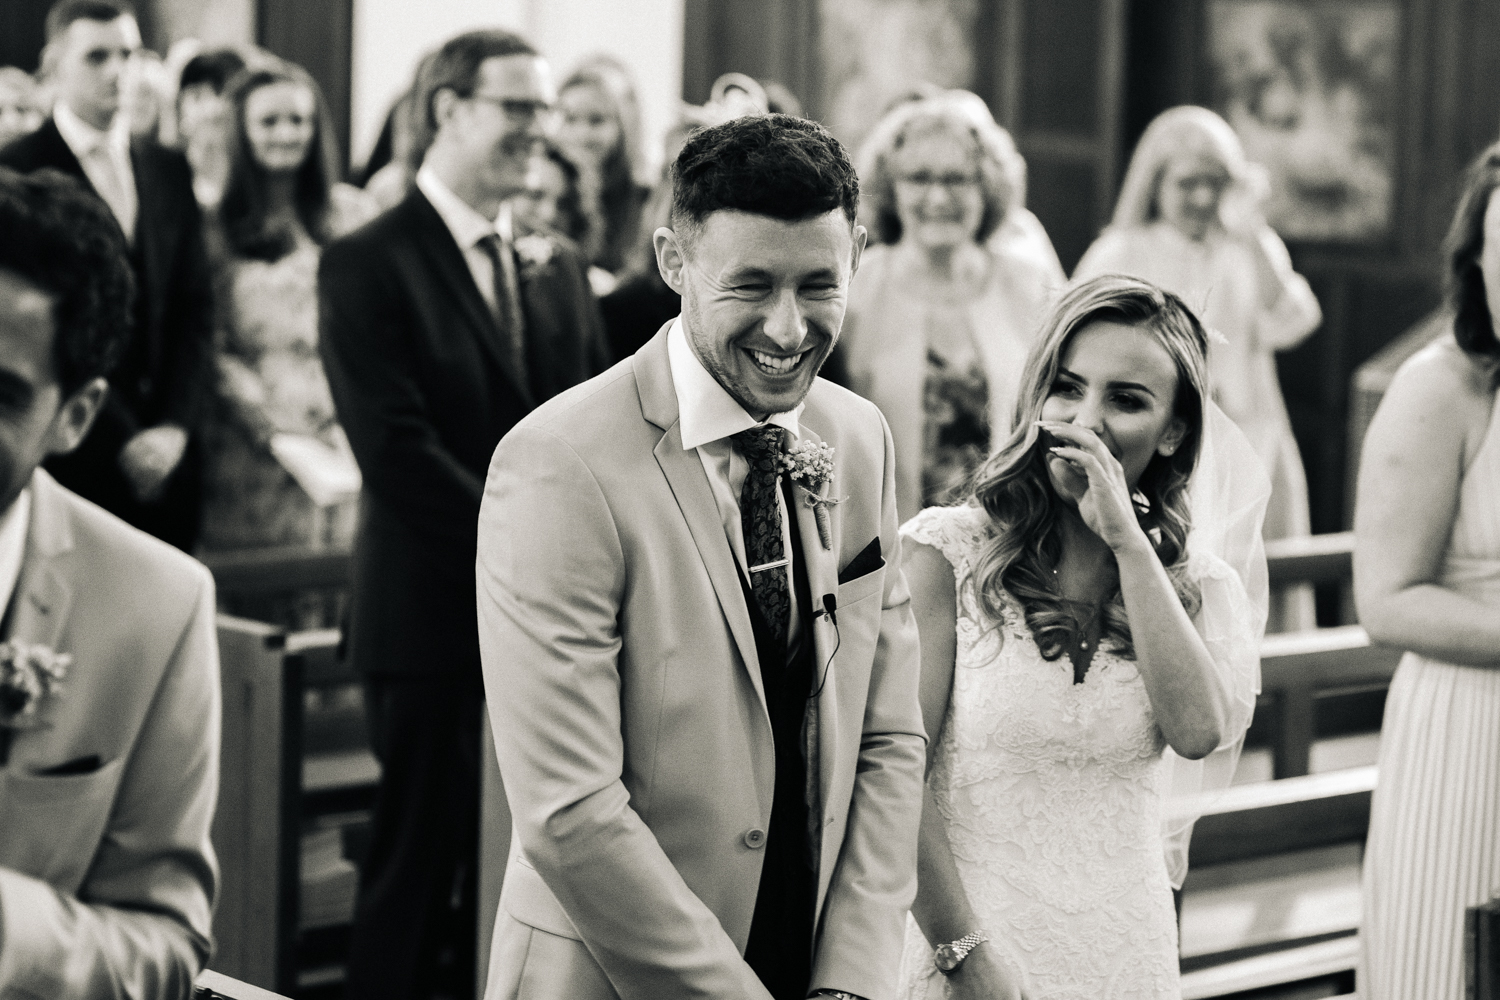 a bride and groom laugh saying their vows in church. worsall village hall wedding north yorkshire. stop motion wedding films videos uk